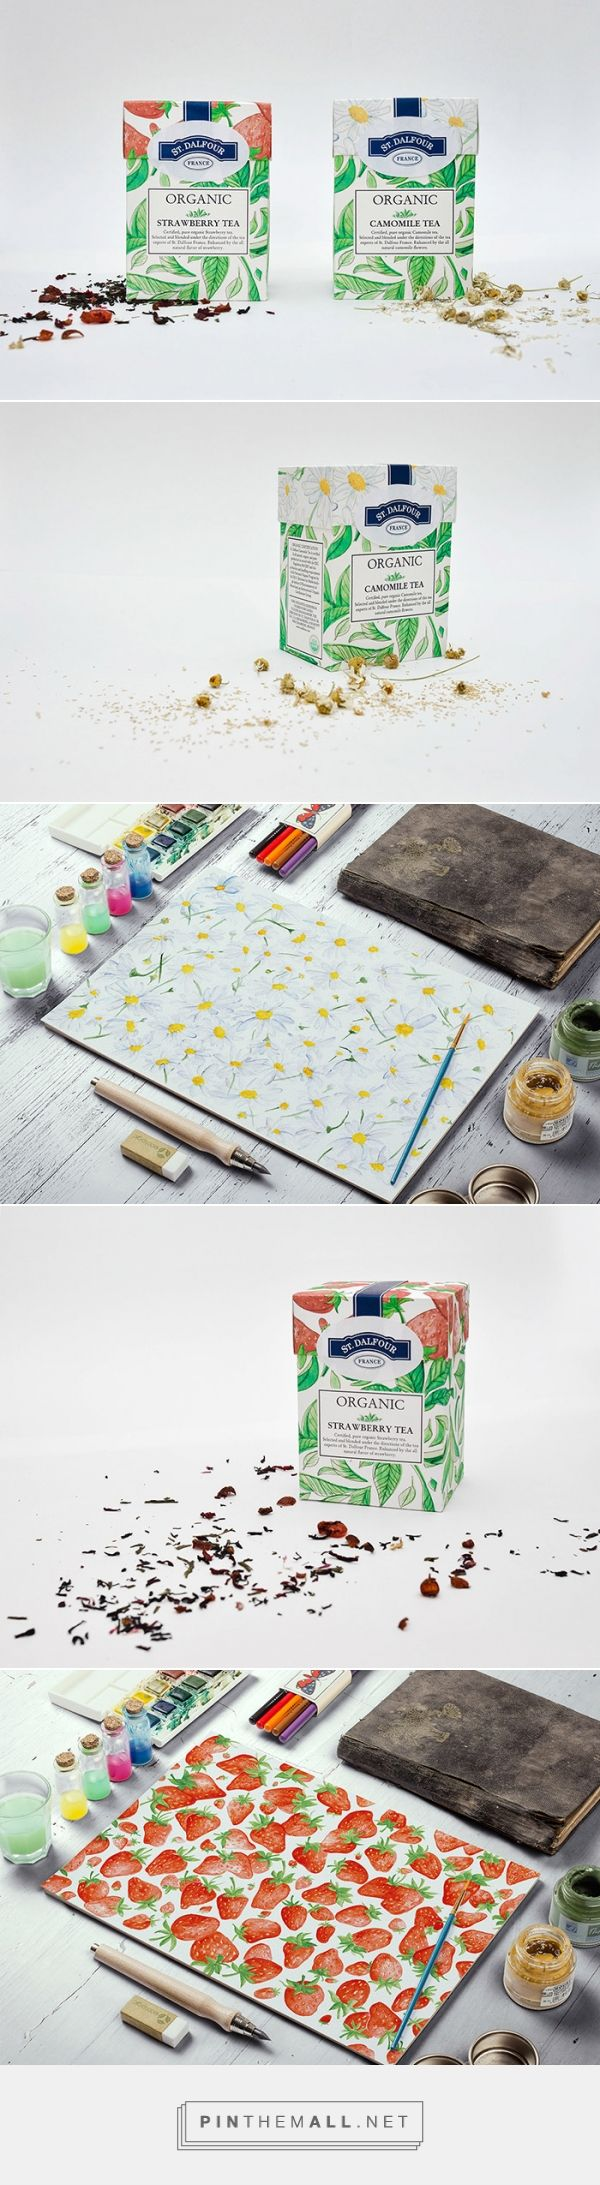 St. Dalfour Tea by Veronika Romanovich. Pin curated by #SFields99 #packaging #design